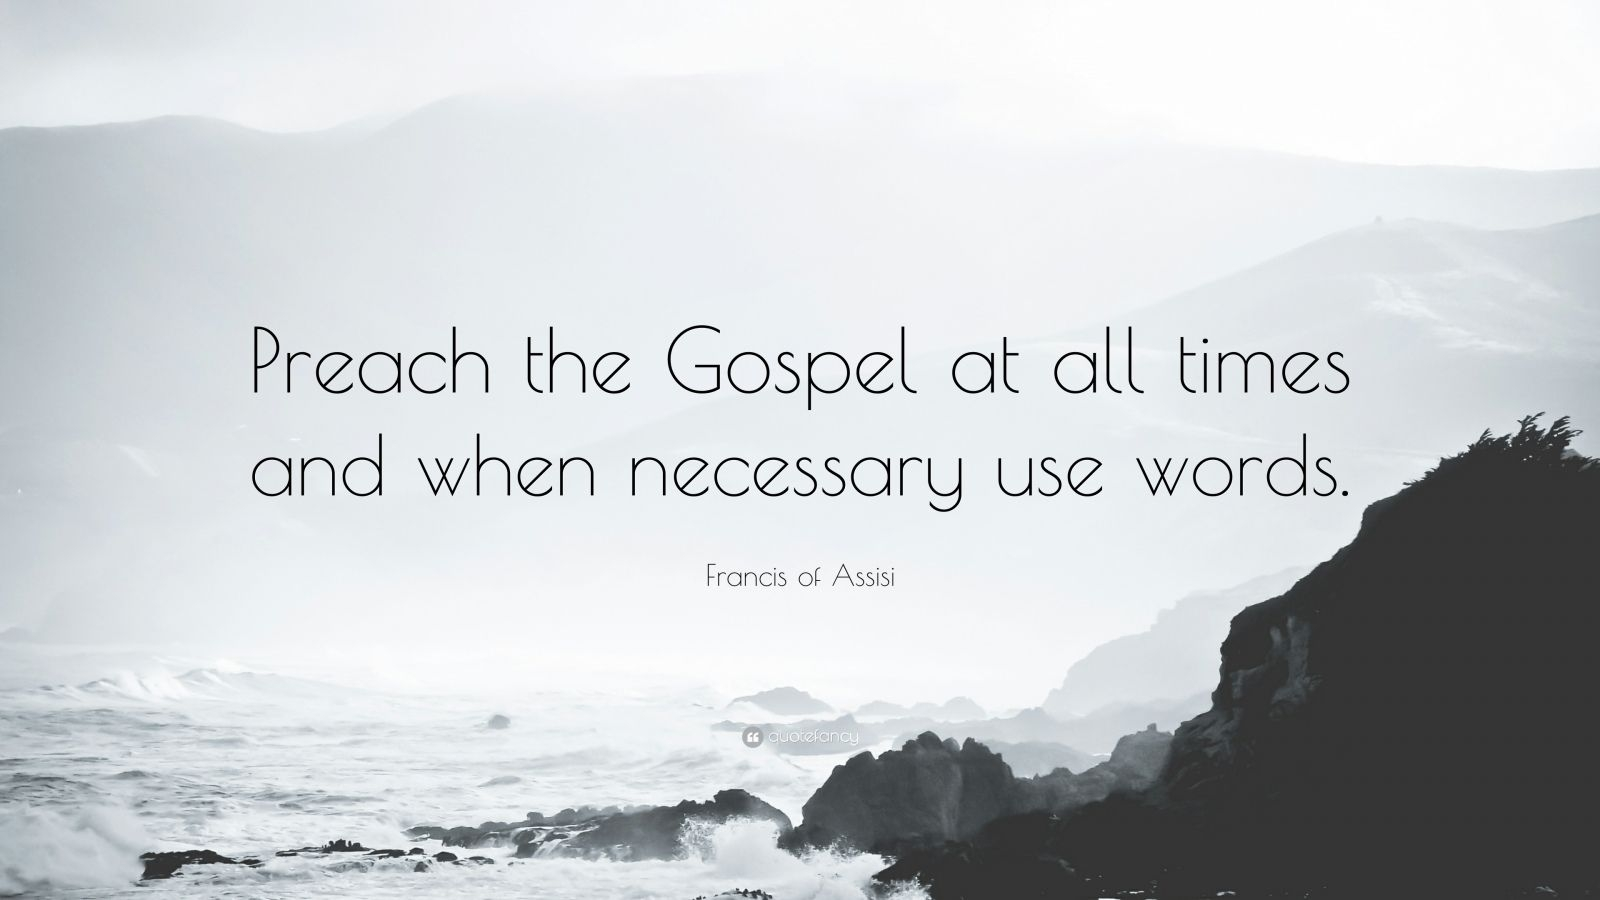 37776-Francis-of-Assisi-Quote-Preach-the-Gospel-at-all-times-and-when